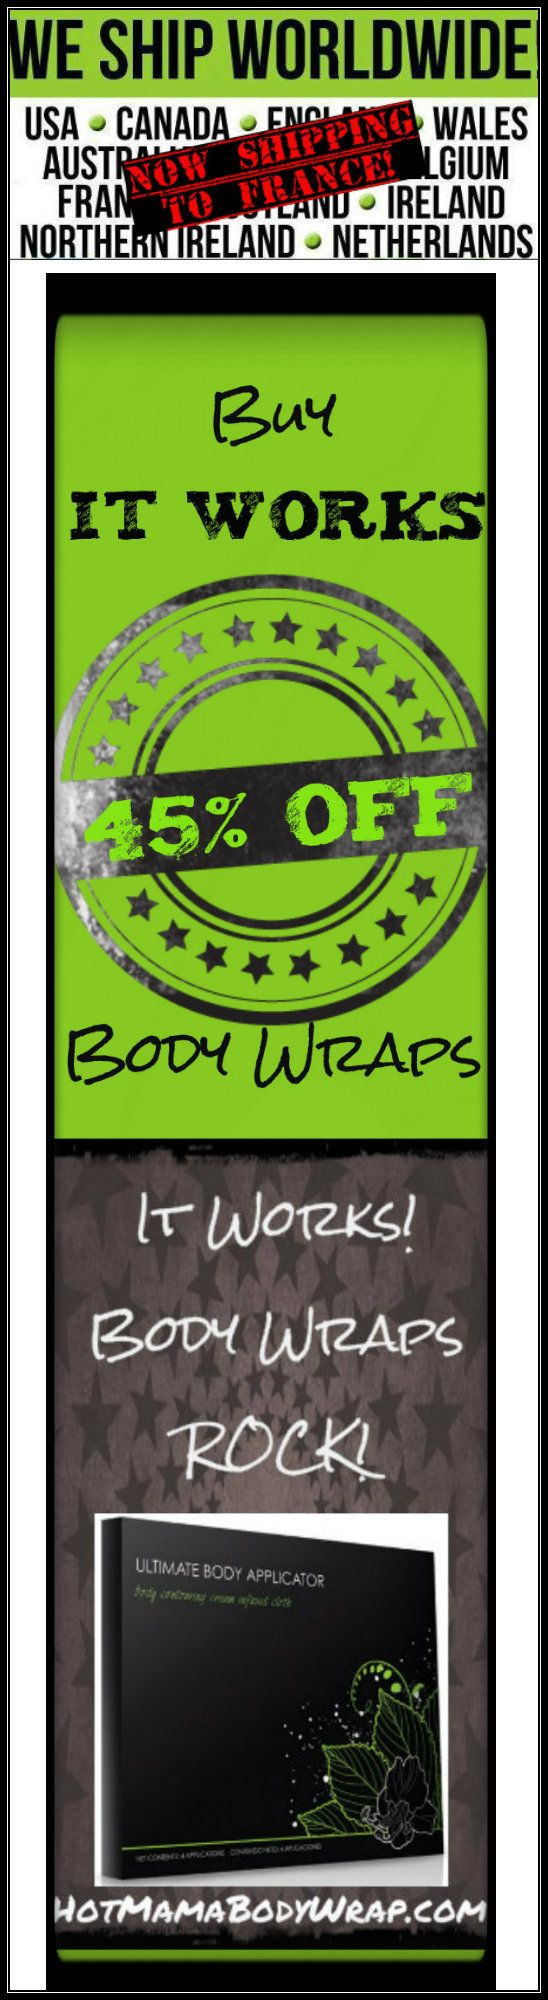 27 best do it yourself body wraps it works body wraps images on it works skinny wraps are simple and do it yourself body wraps that help to tighten and tone your skin you can put them anywhere and they work wonders solutioingenieria Images